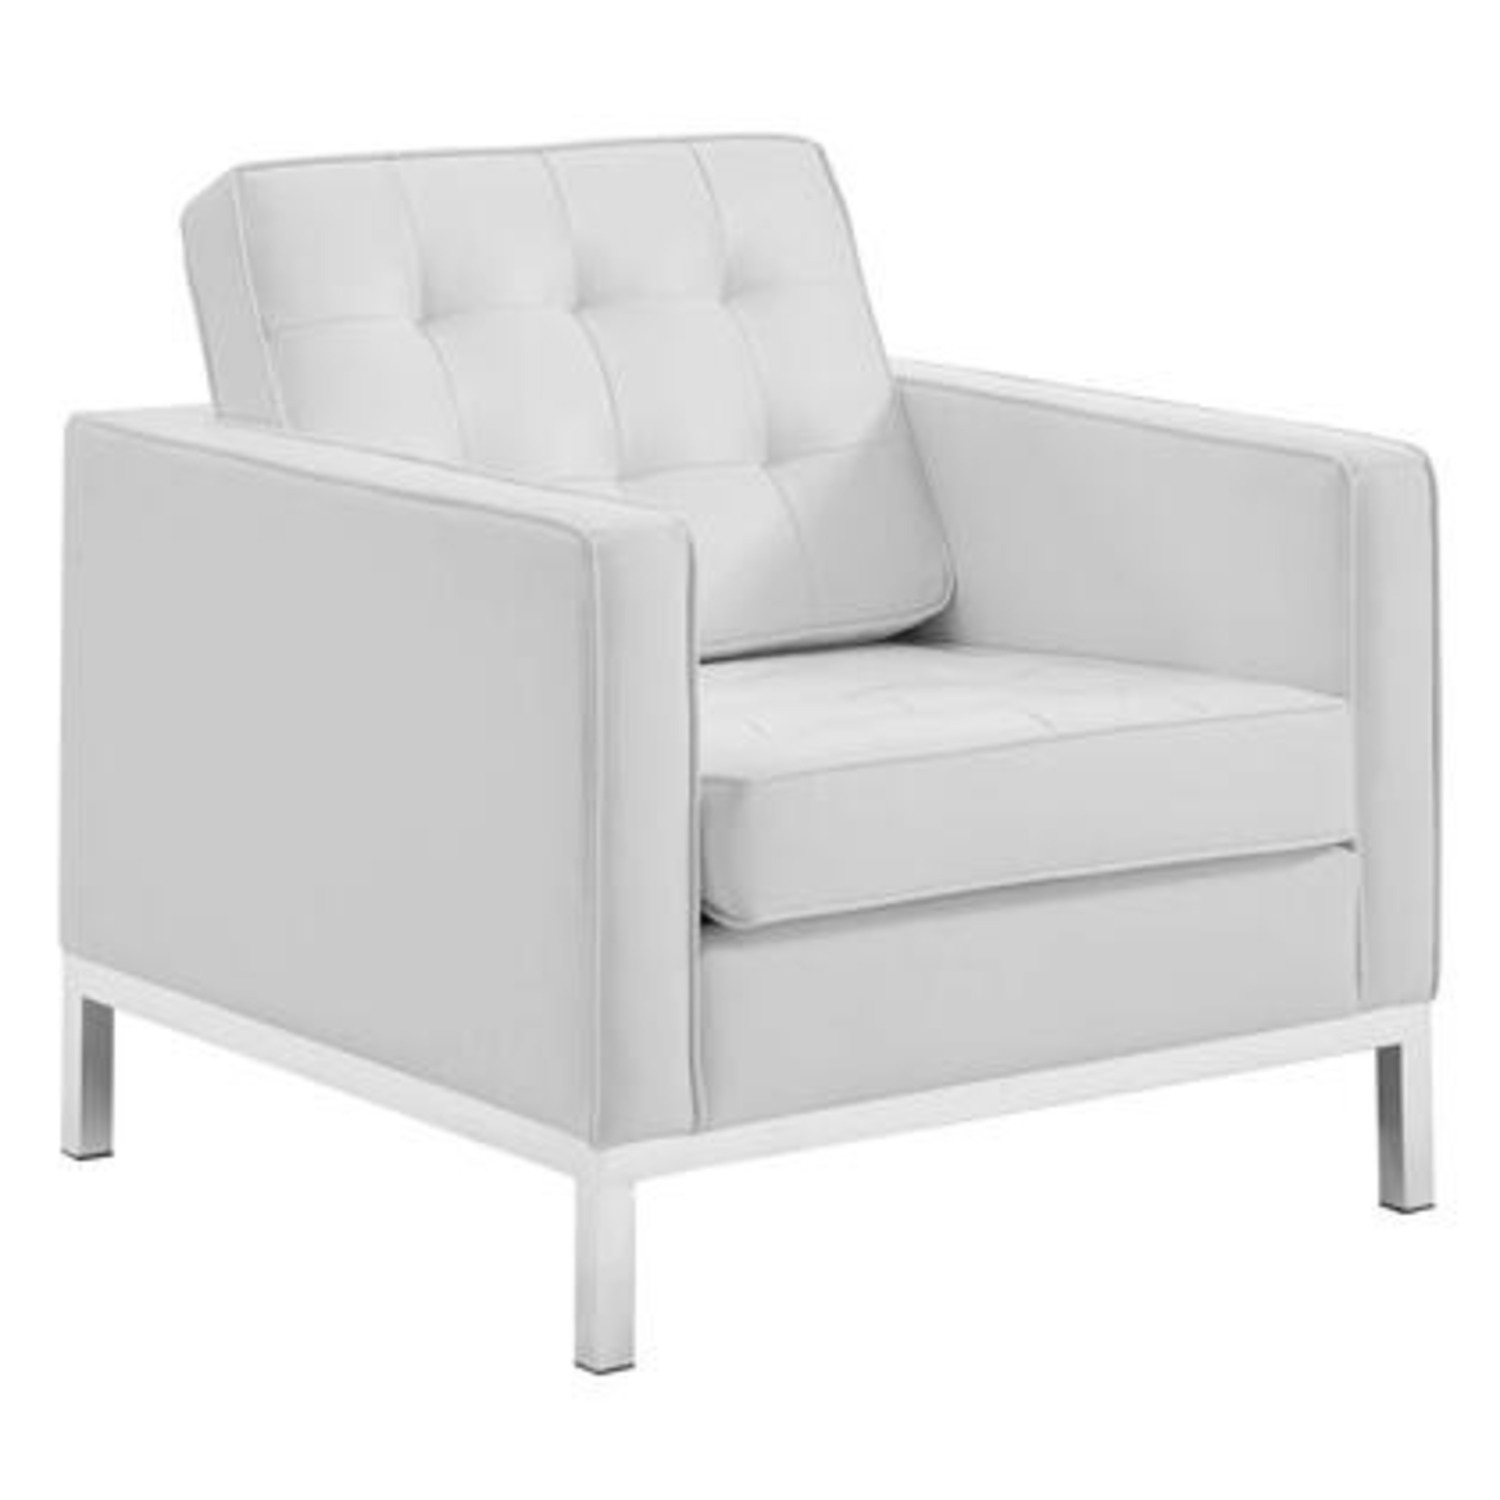 Armchair In White Faux Leather W/ Silver Legs - image-0